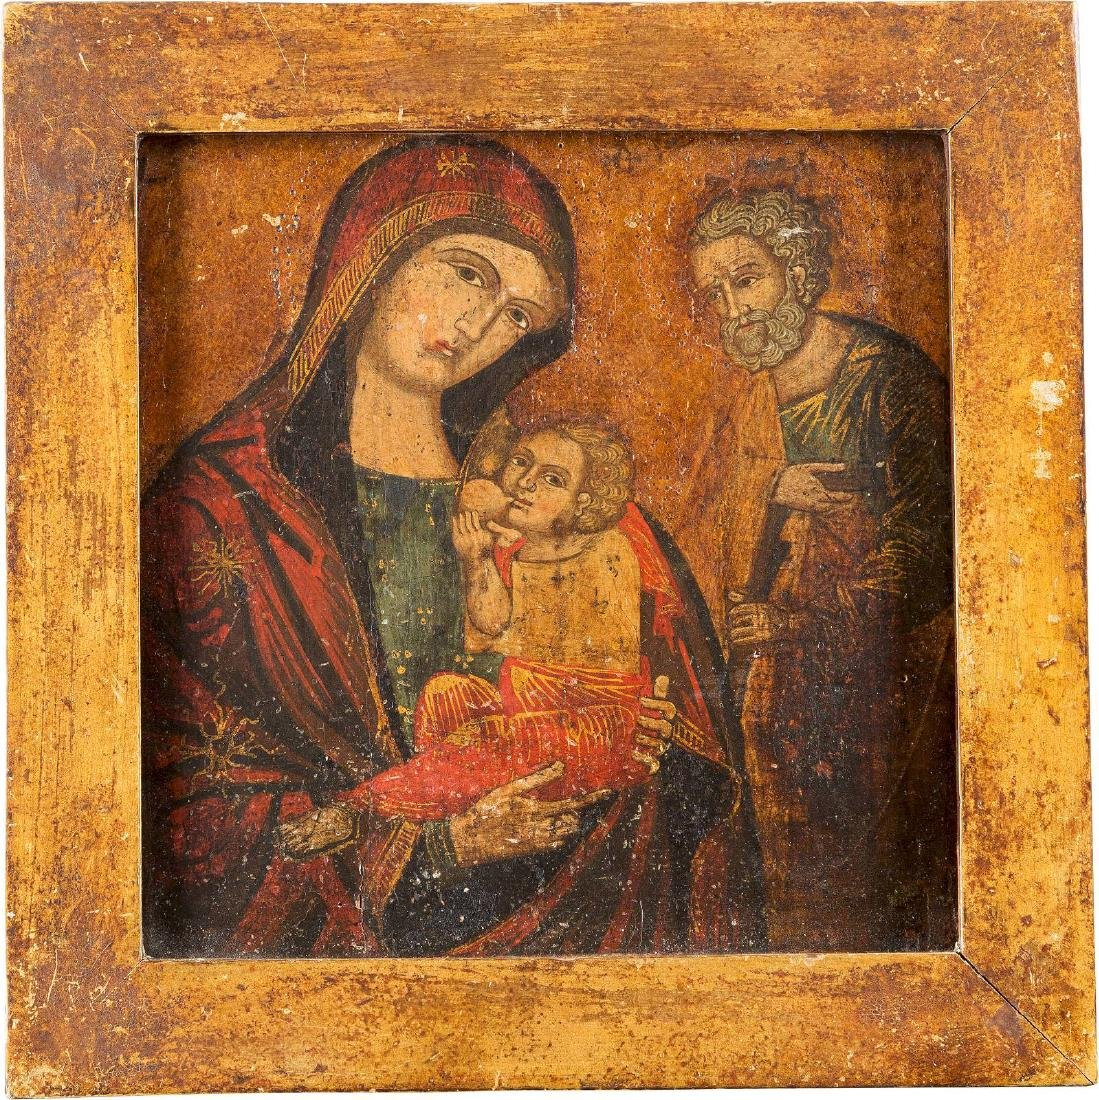 AN ICON OF THE MOTHER OF GOD GALAKTOTROPHOUSA AND ST.